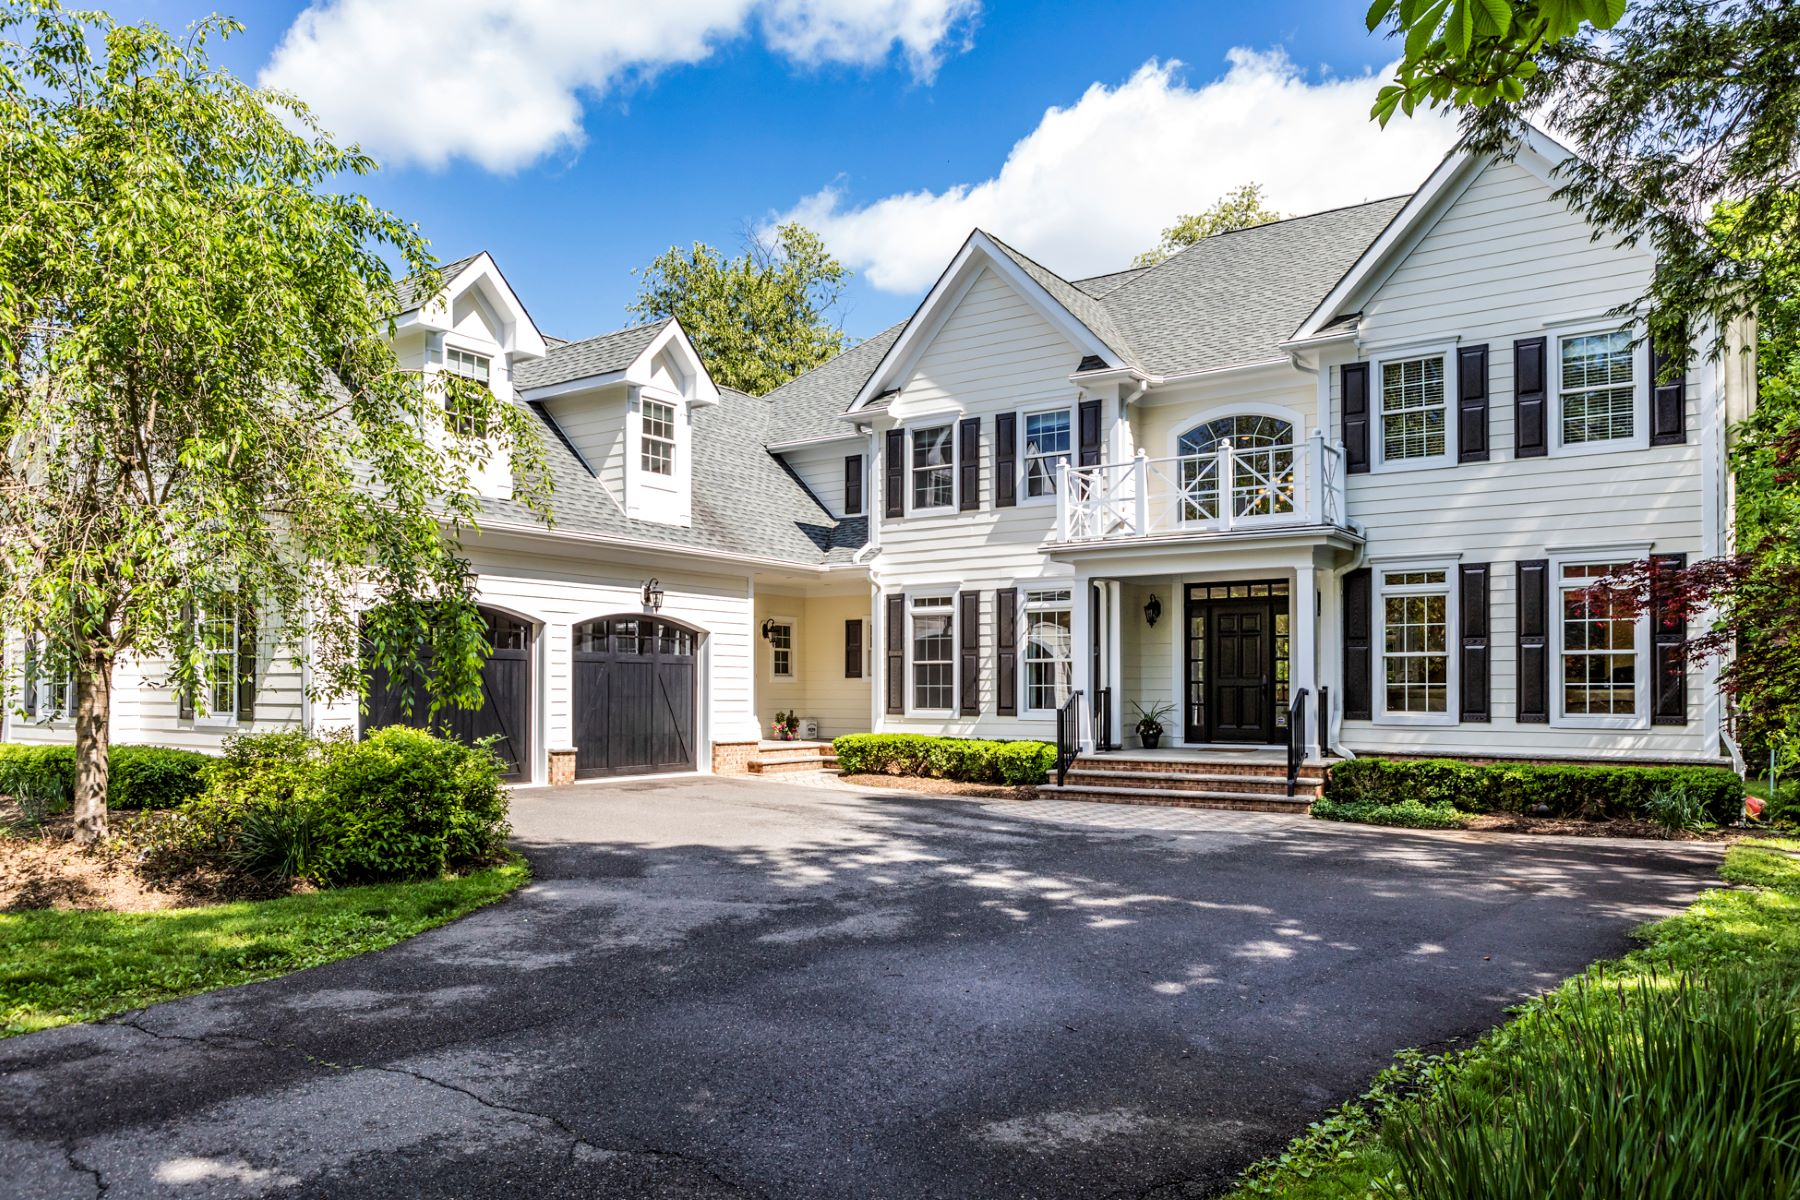 Additional photo for property listing at Unexpected Extras at Every Turn 25 Howe Circle, Princeton, New Jersey 08540 United States